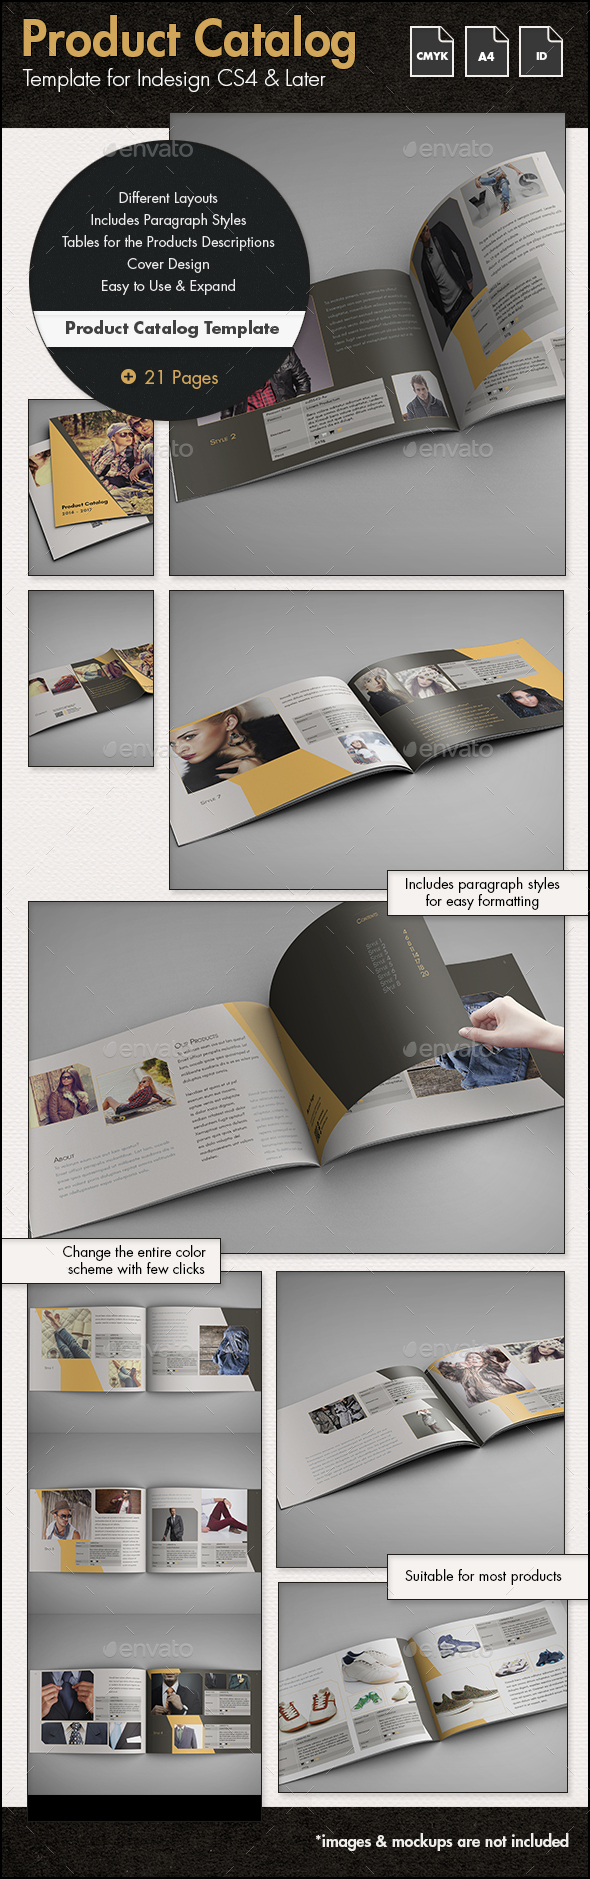 Product Catalog Template - A4 Landscape - Catalogs Brochures